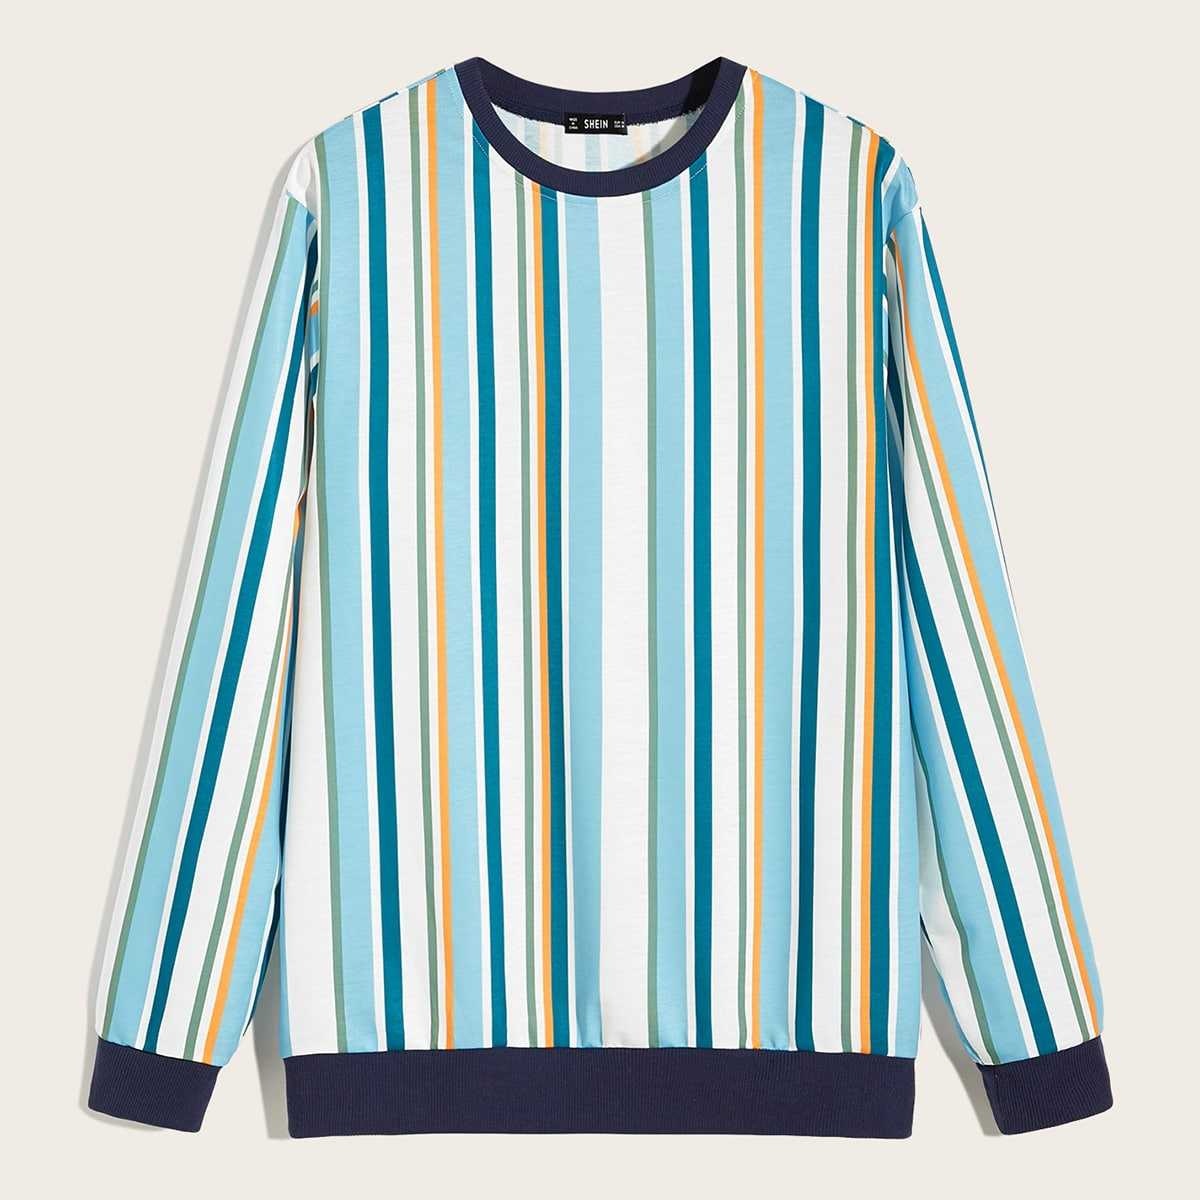 Guys Contrast Neck Striped Pullover in Multicolor by ROMWE on GOOFASH